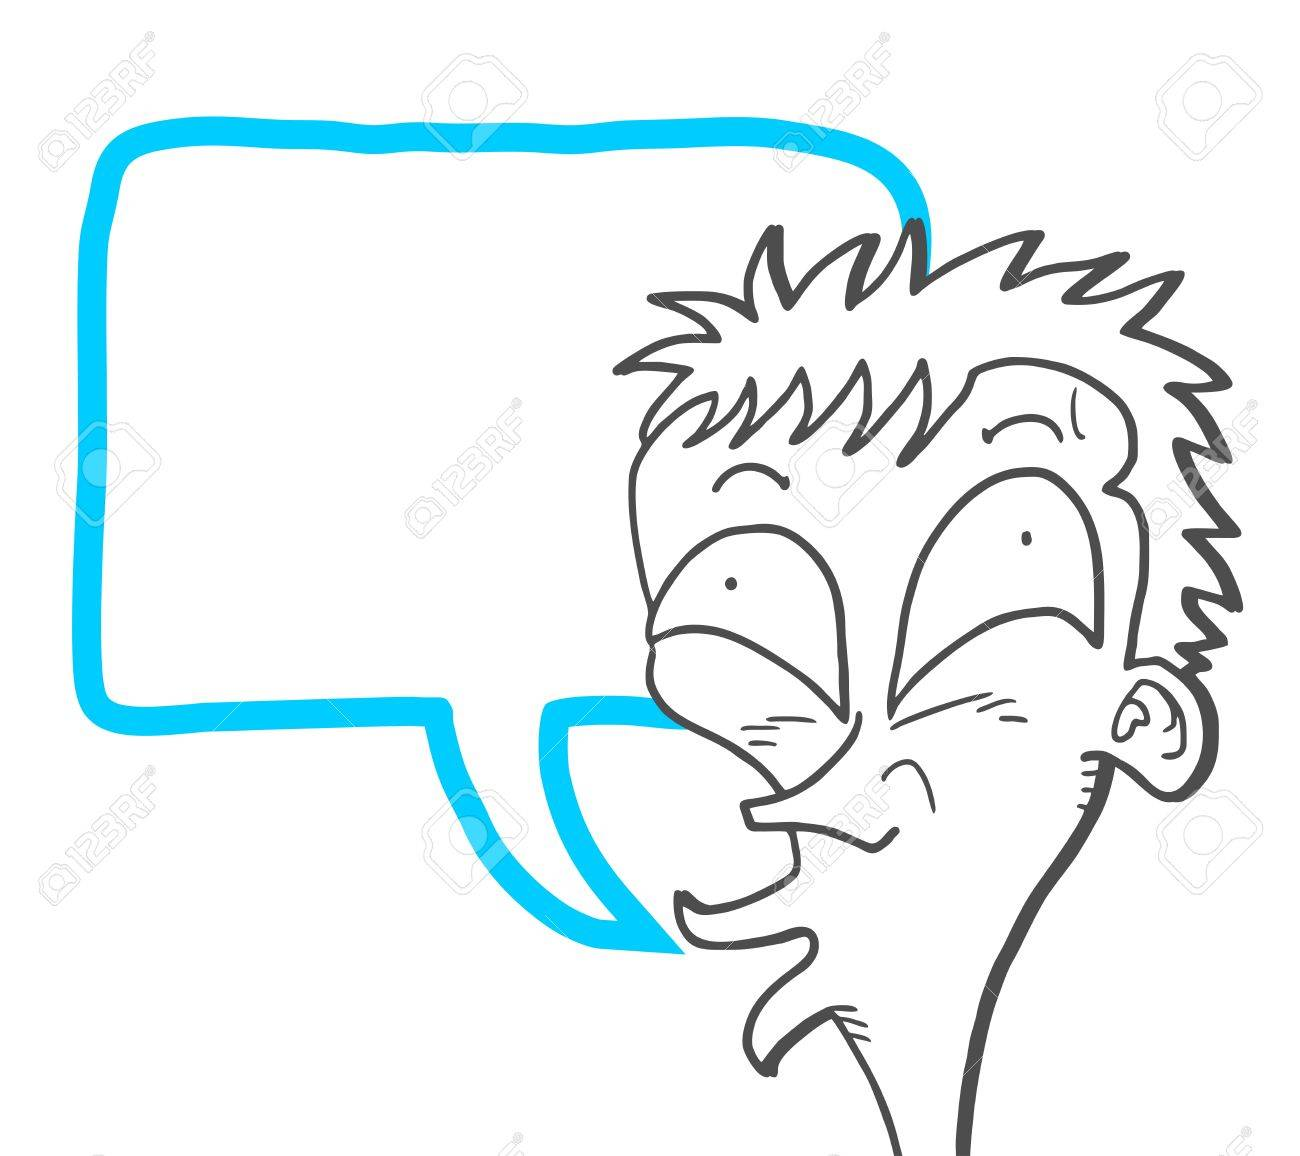 Talking draw Stock Vector - 17509491